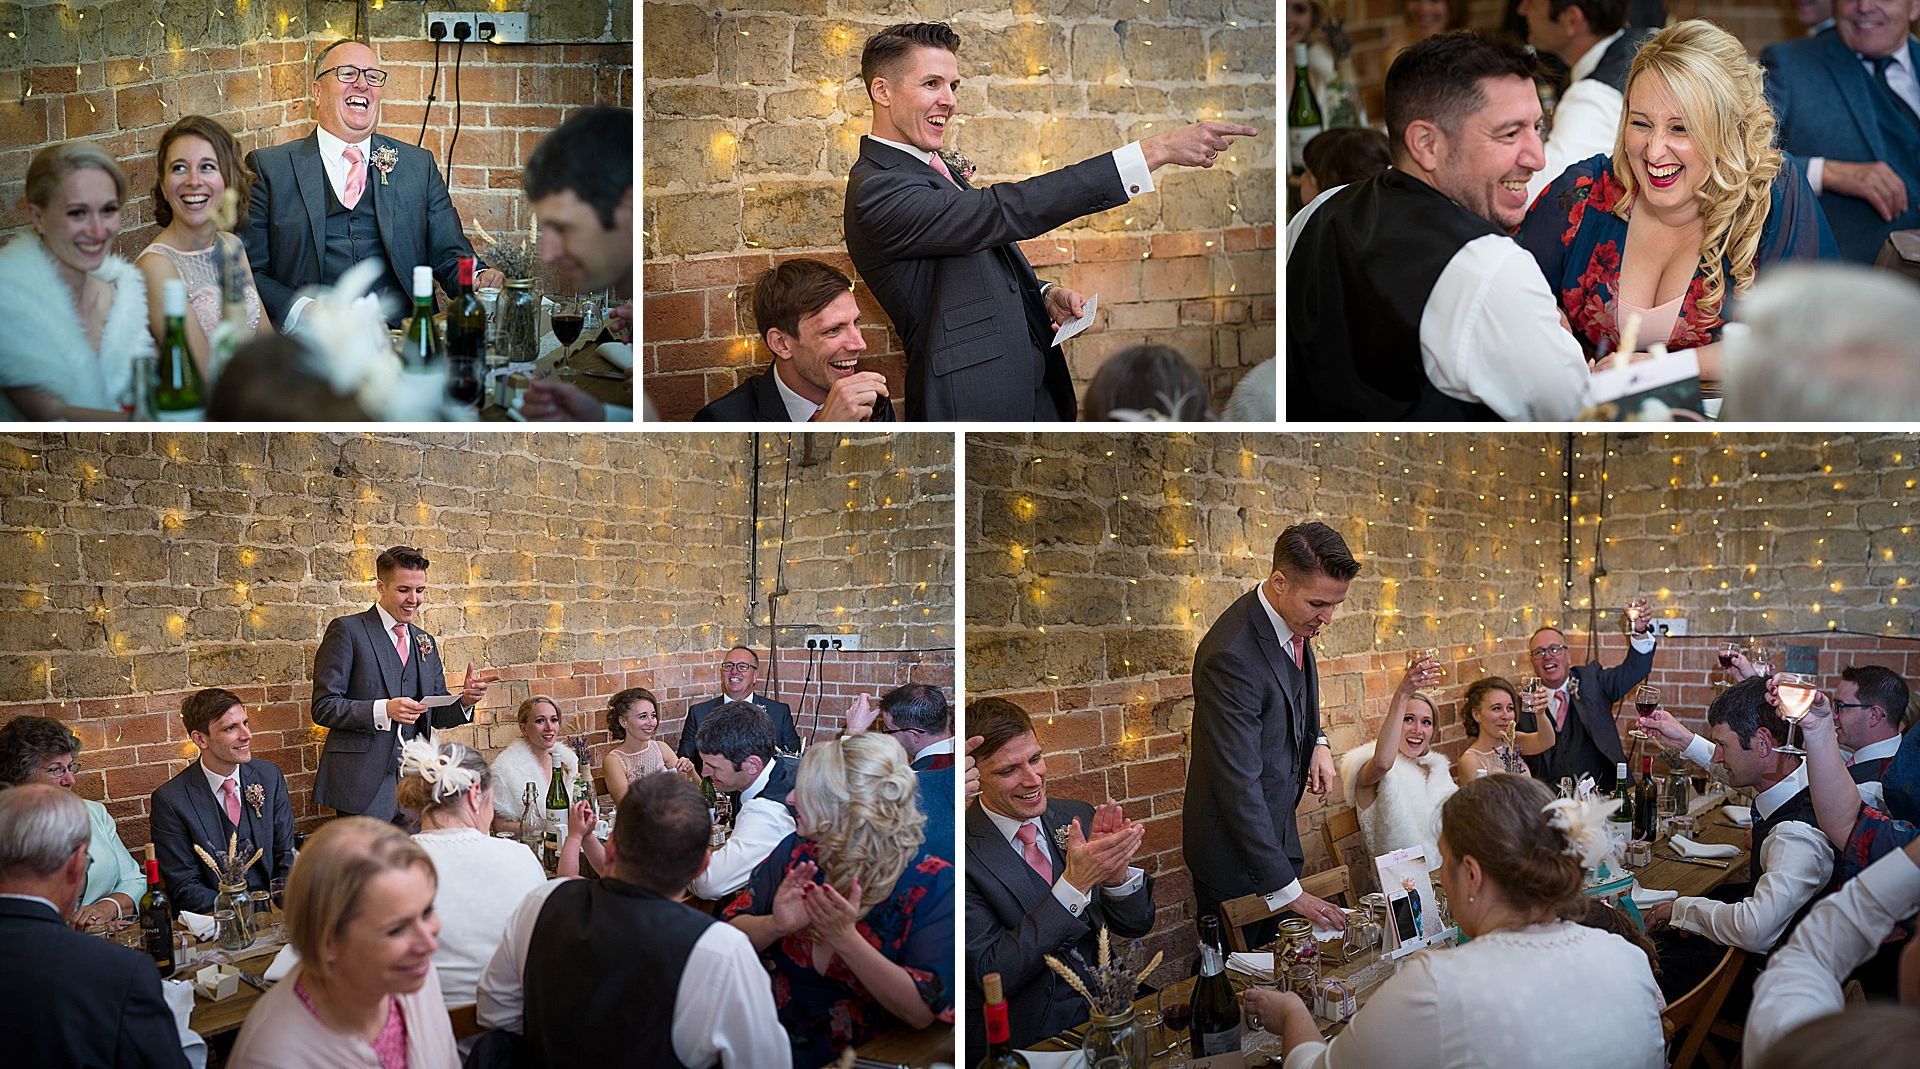 Wedding speeches at Epwell Grounds Barn